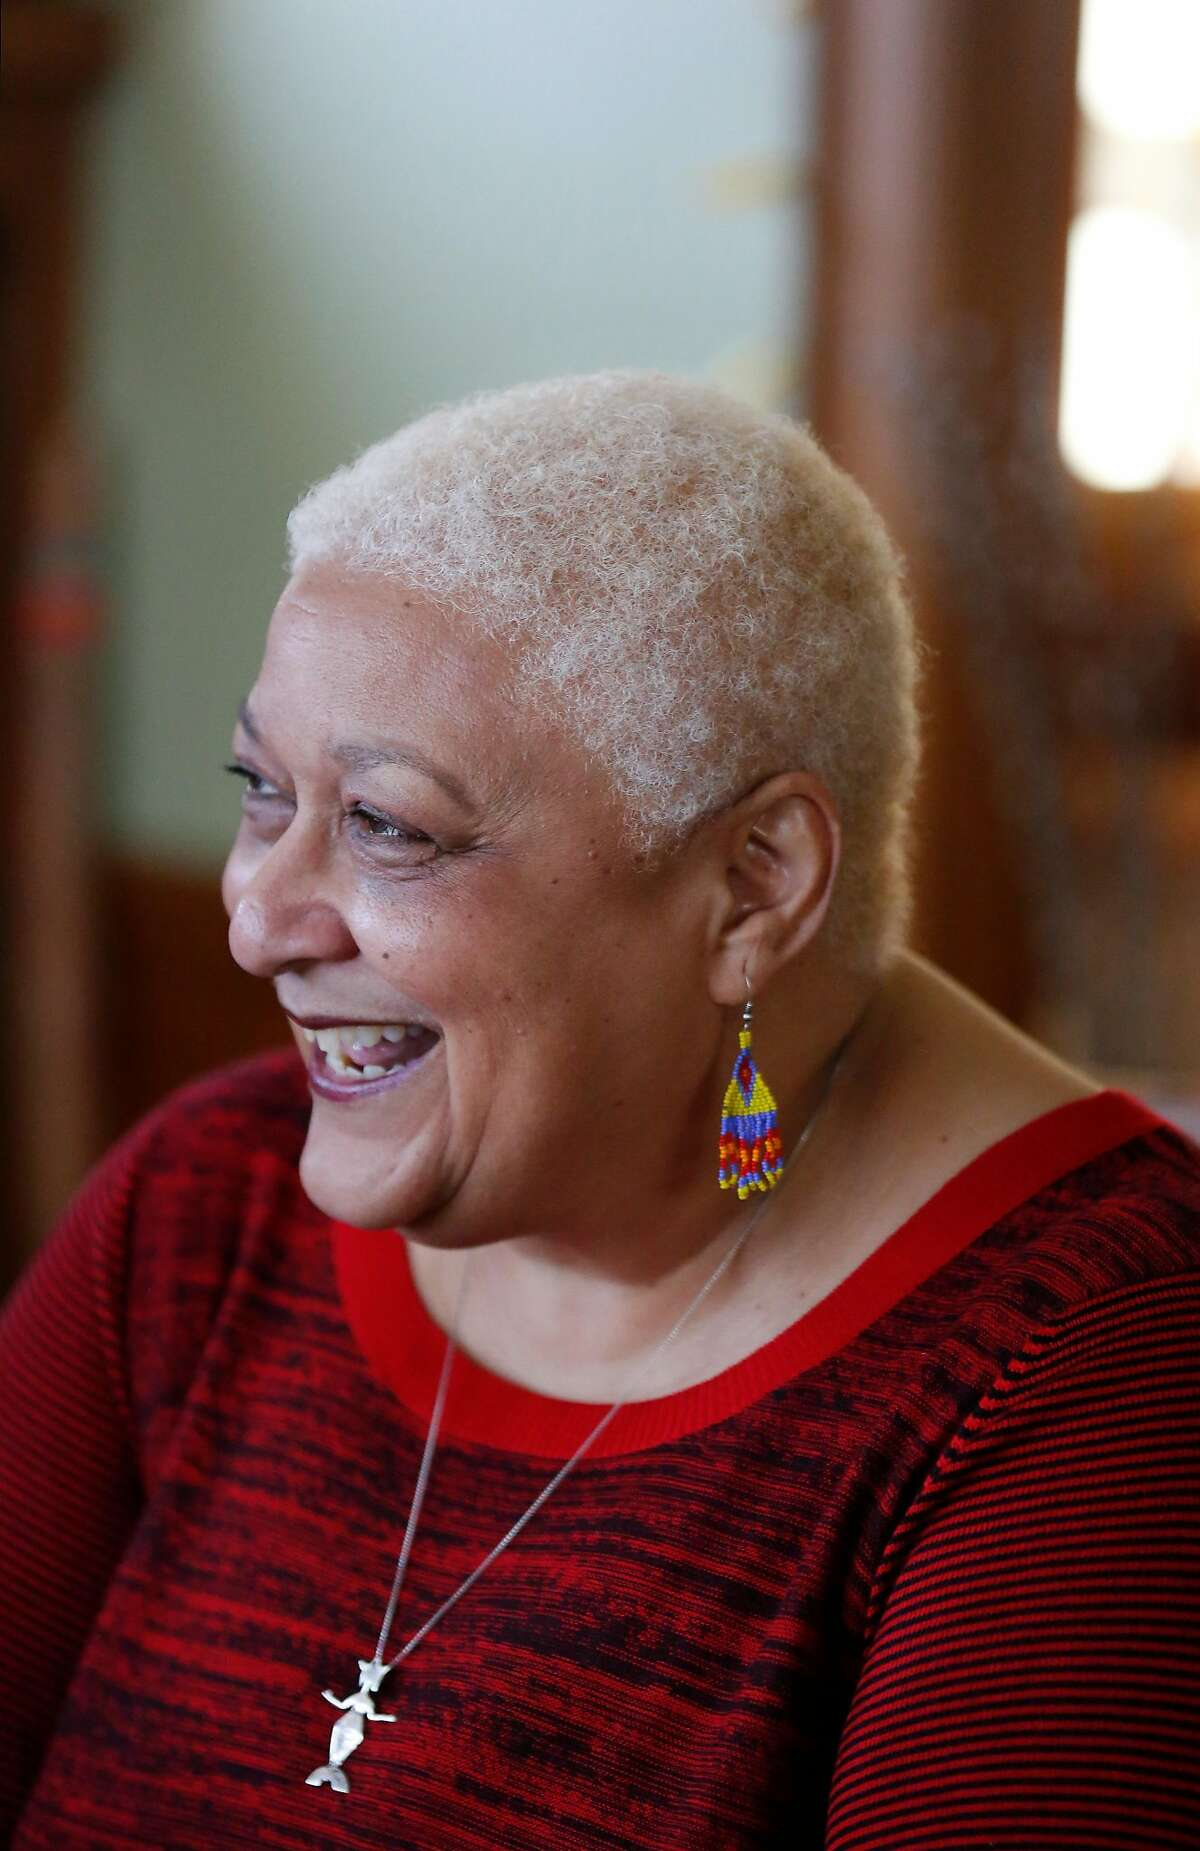 Jewelle Gomez, the author of The Gilda Stories, pictured in her home March 24, 2016 in San Francisco, Calif.